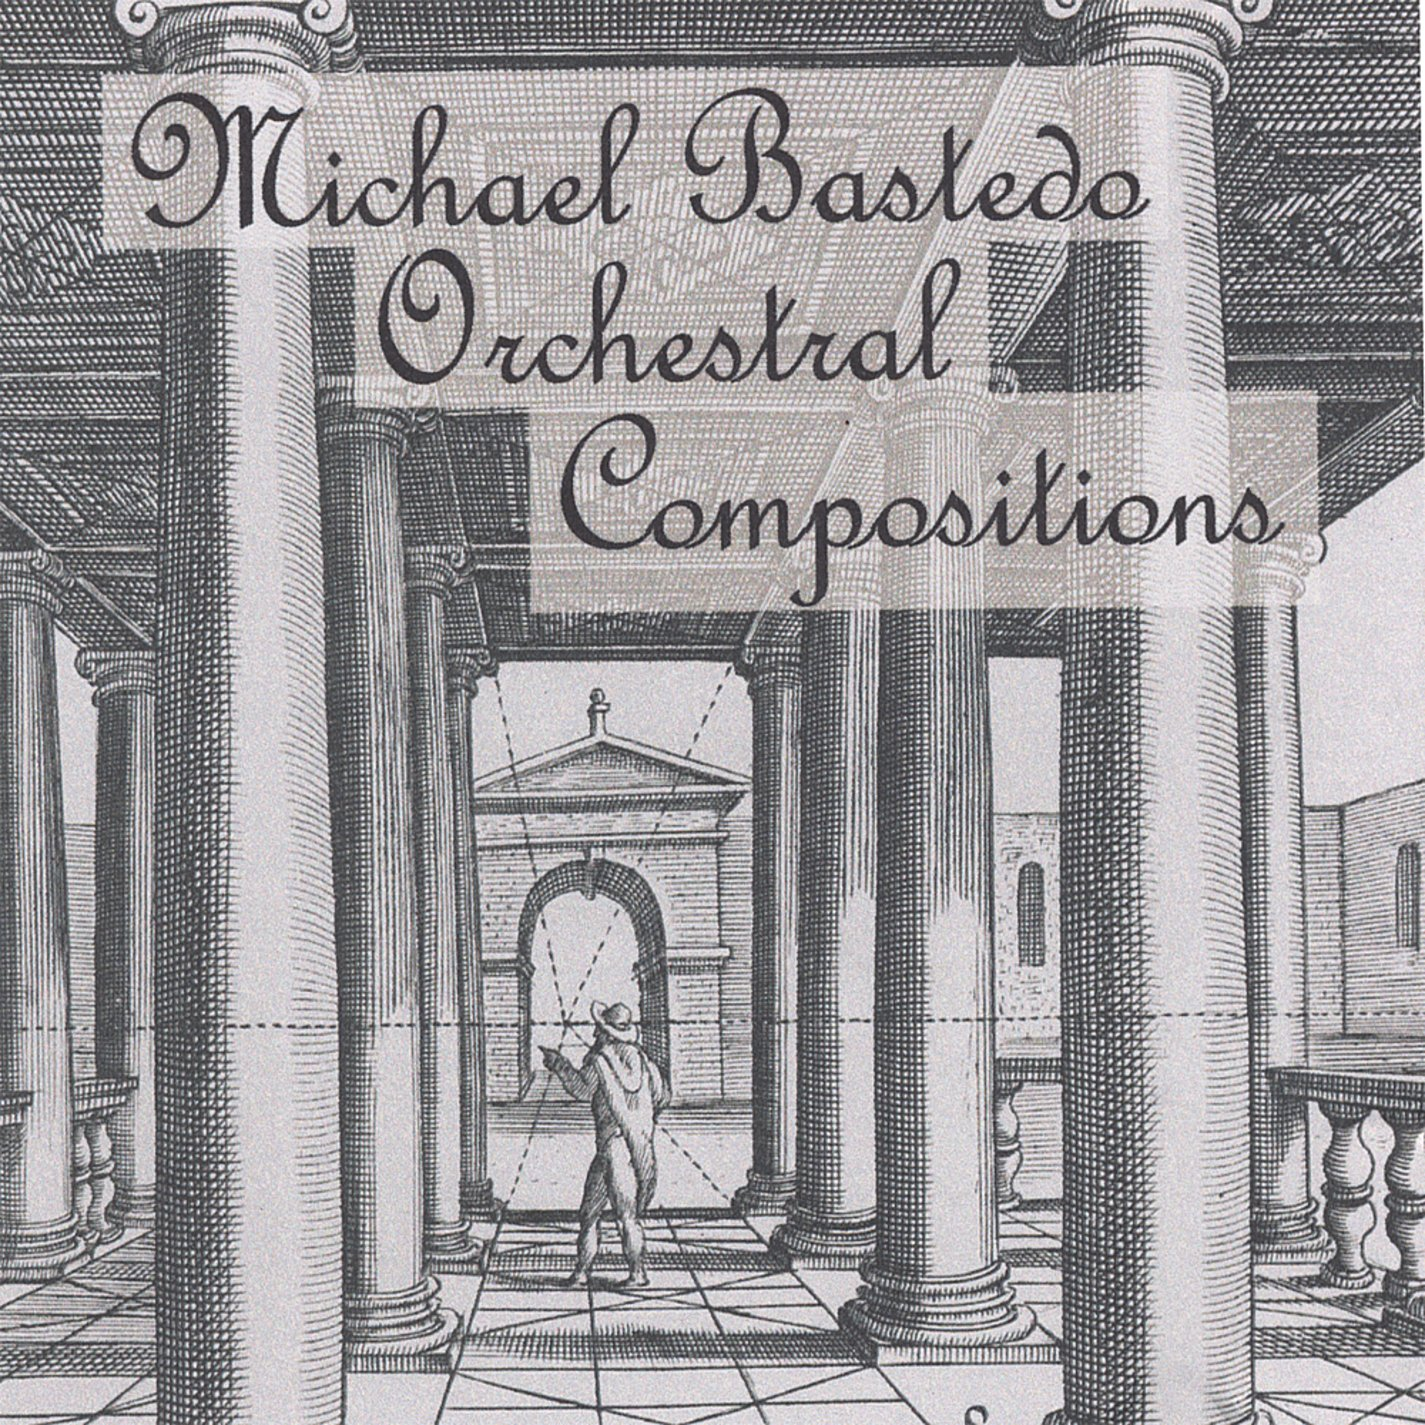 Orchestral Compositions